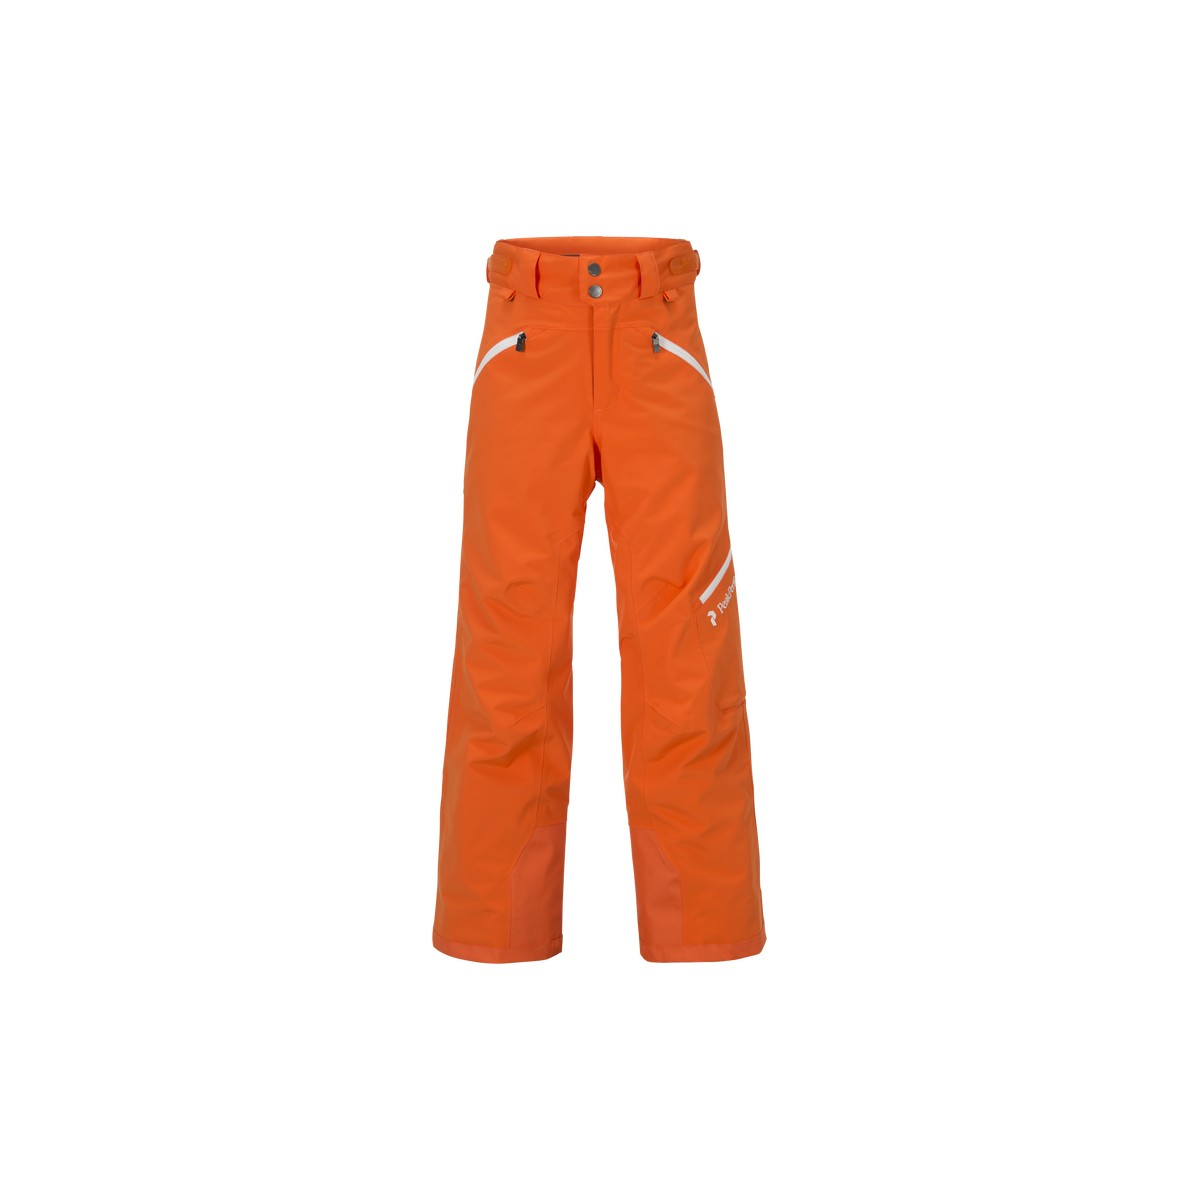 Coral pants Orange pants Red Pants Orange outfits Spring Blooms Pink Jacket Trouser pants Office outfits Work Outfits Casual Dressing Up Orange Clothes Office Wear Work Clothes Court Attire Red Shorts Workwear Office Attire Spring Flowers Work attire Work Wardrobe Work Wardrobe. Multiple oranges!